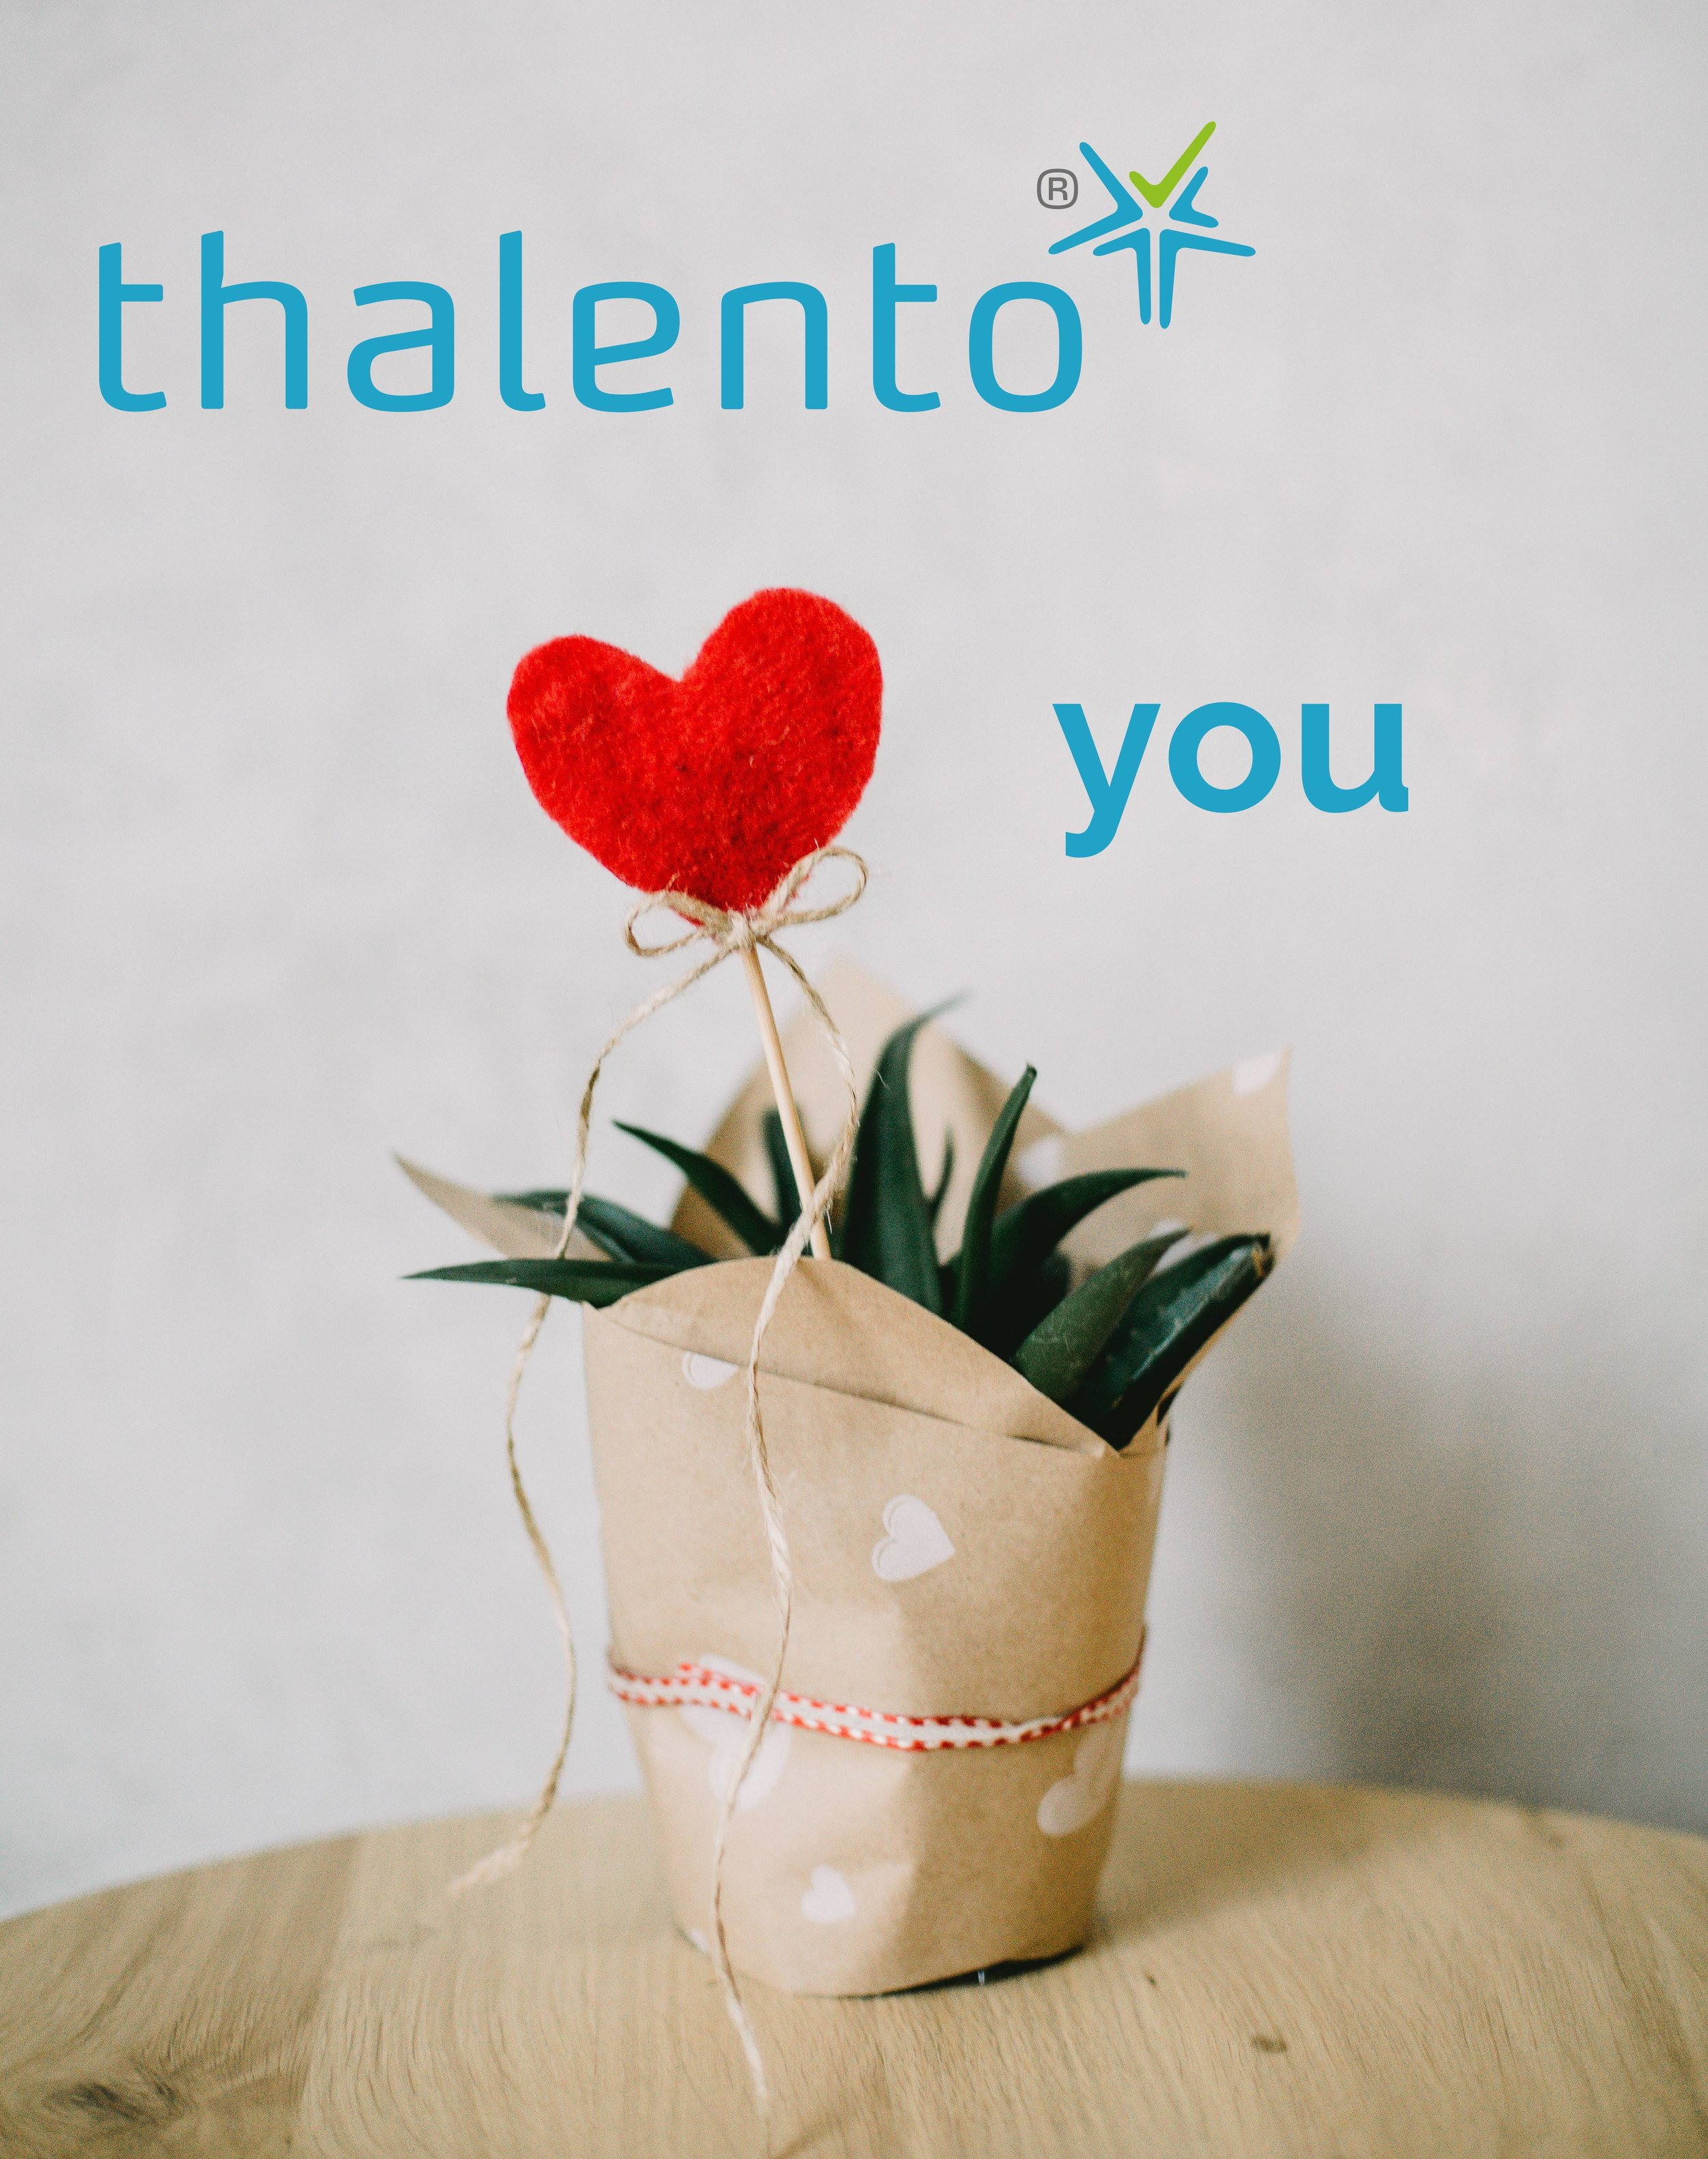 Thalento-loves-you_1.jpg